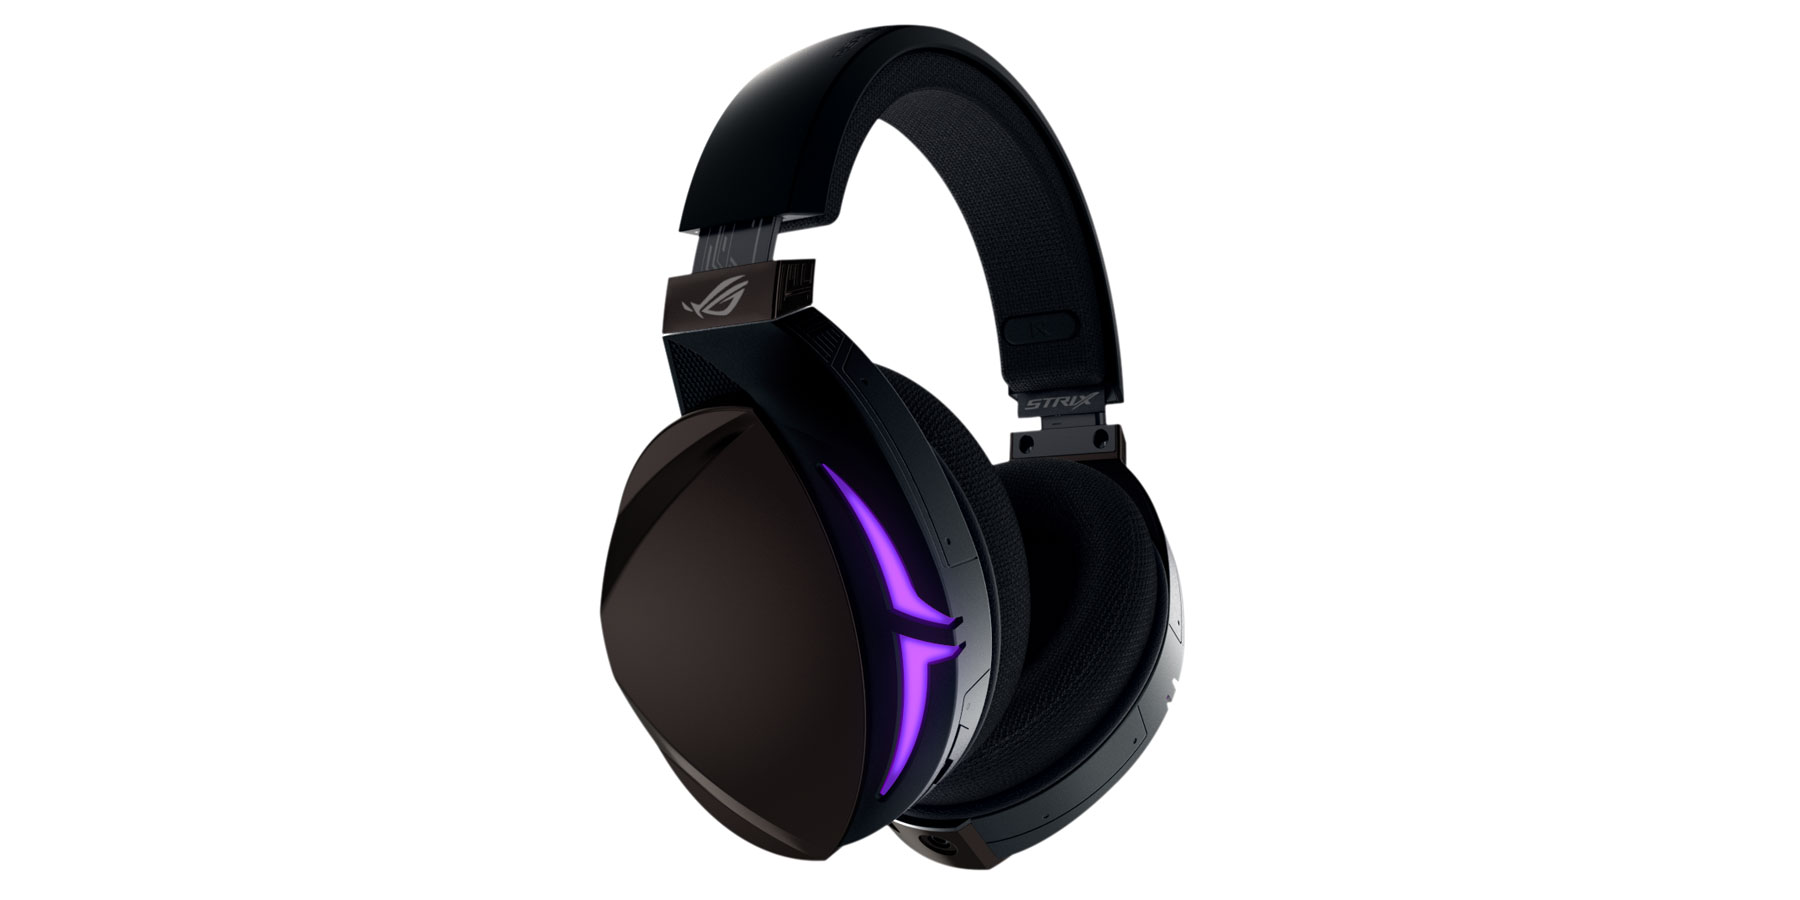 The colorful Strix Fusion headset can blink in sync with others